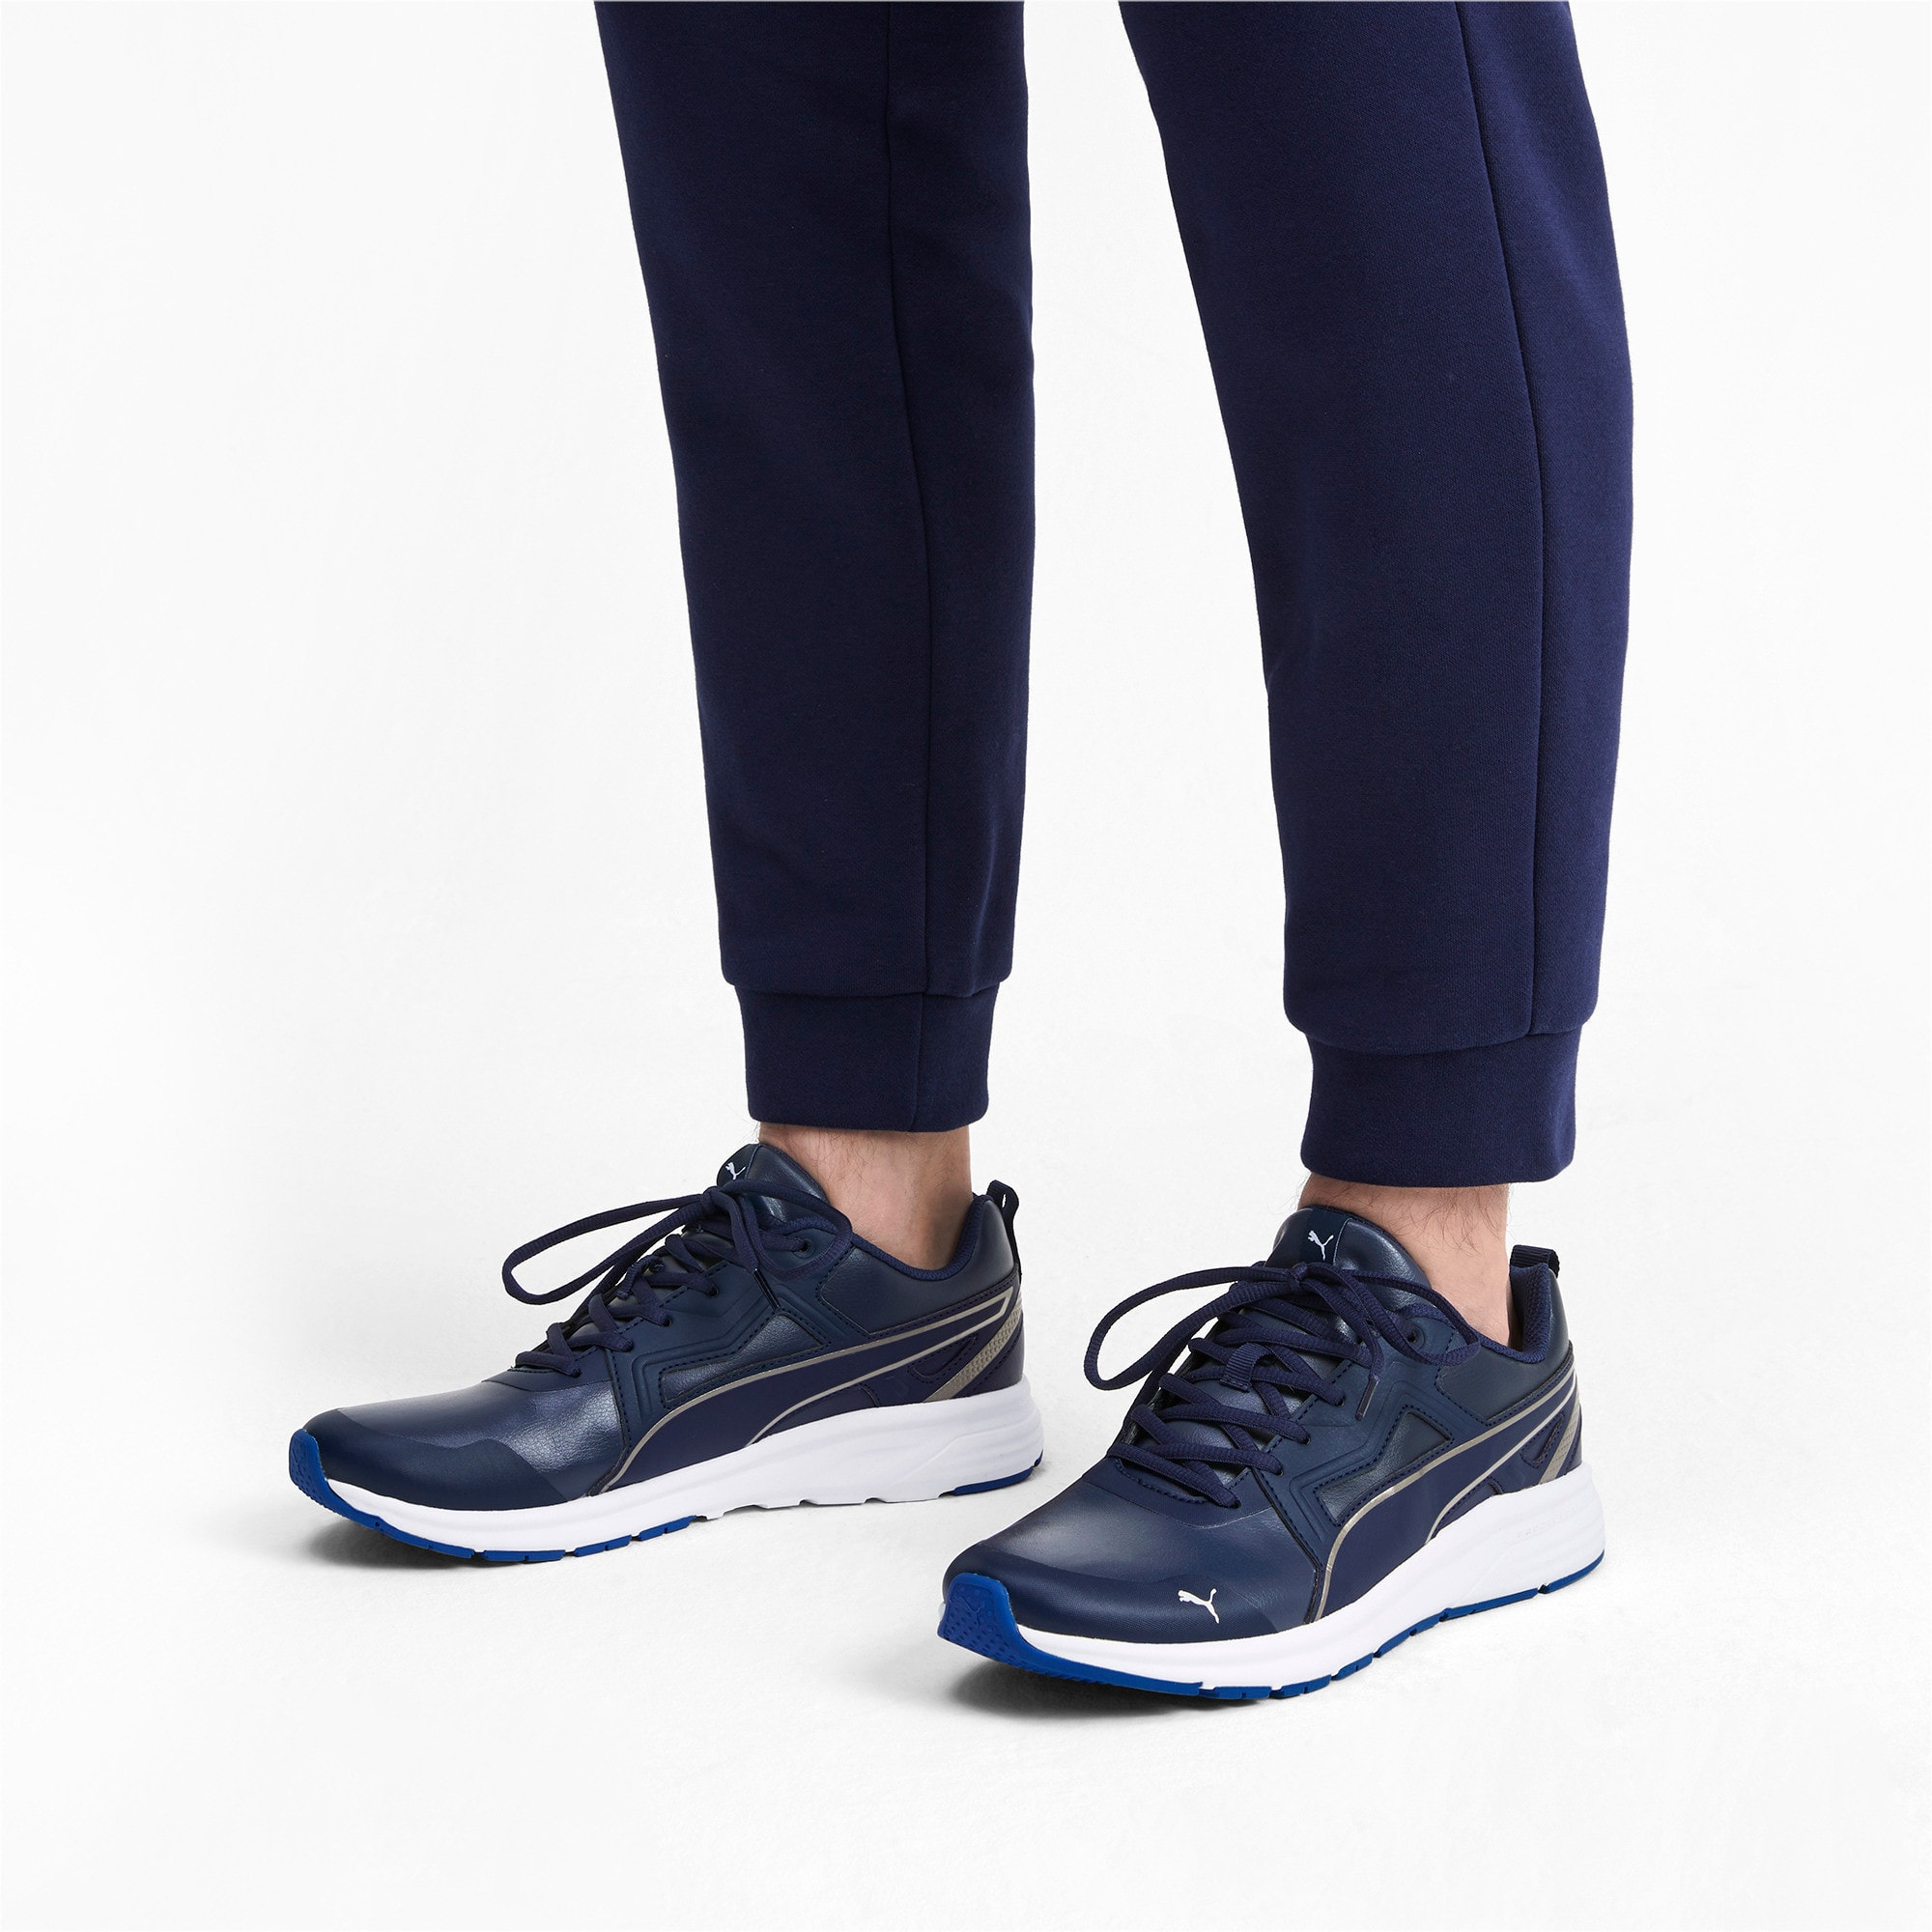 Thumbnail 2 of Pure Jogger SL Trainers, Peacoat-Silver-White-Blue, medium-IND